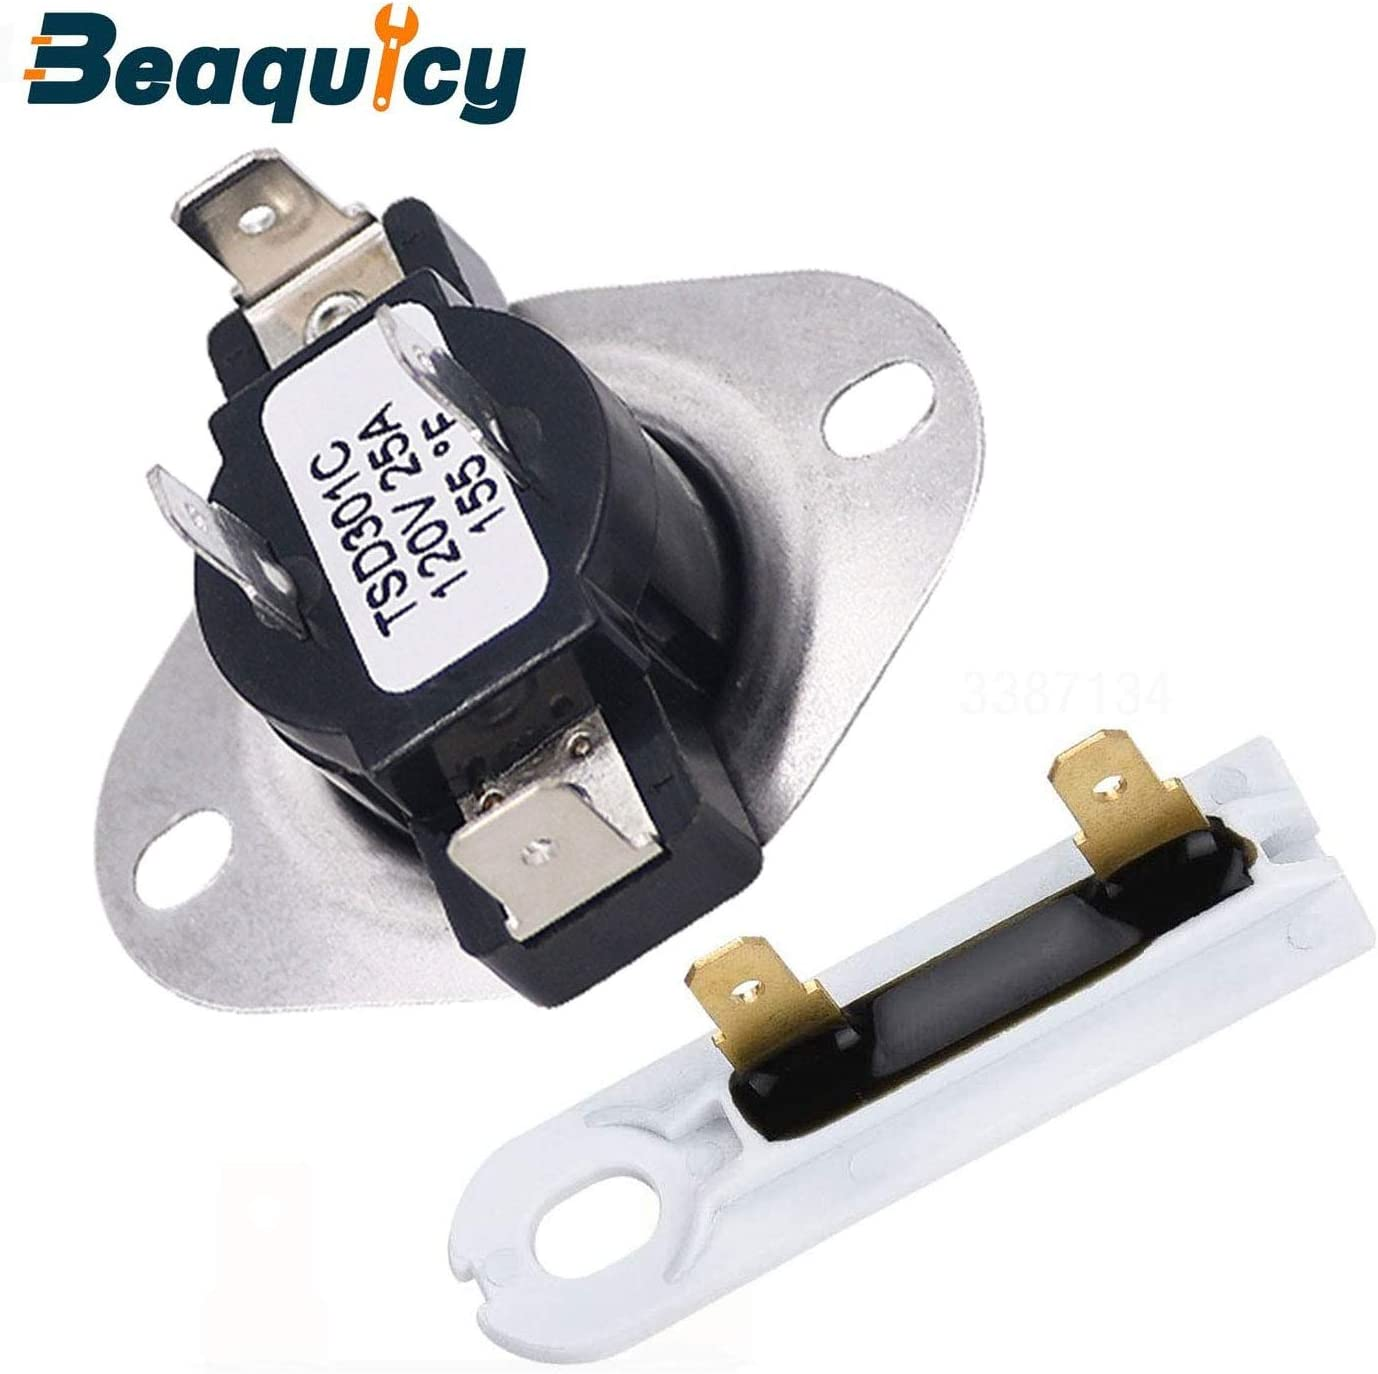 Beaquicy 3387134 Dryer Cycling Thermostat with 3392519 Dryer Non Resettable Thermal Fuse - Replacement for Whirlpool Kenmore Kitchen Aid Maytag Dryer - Package Includes 3387134 & 3392519